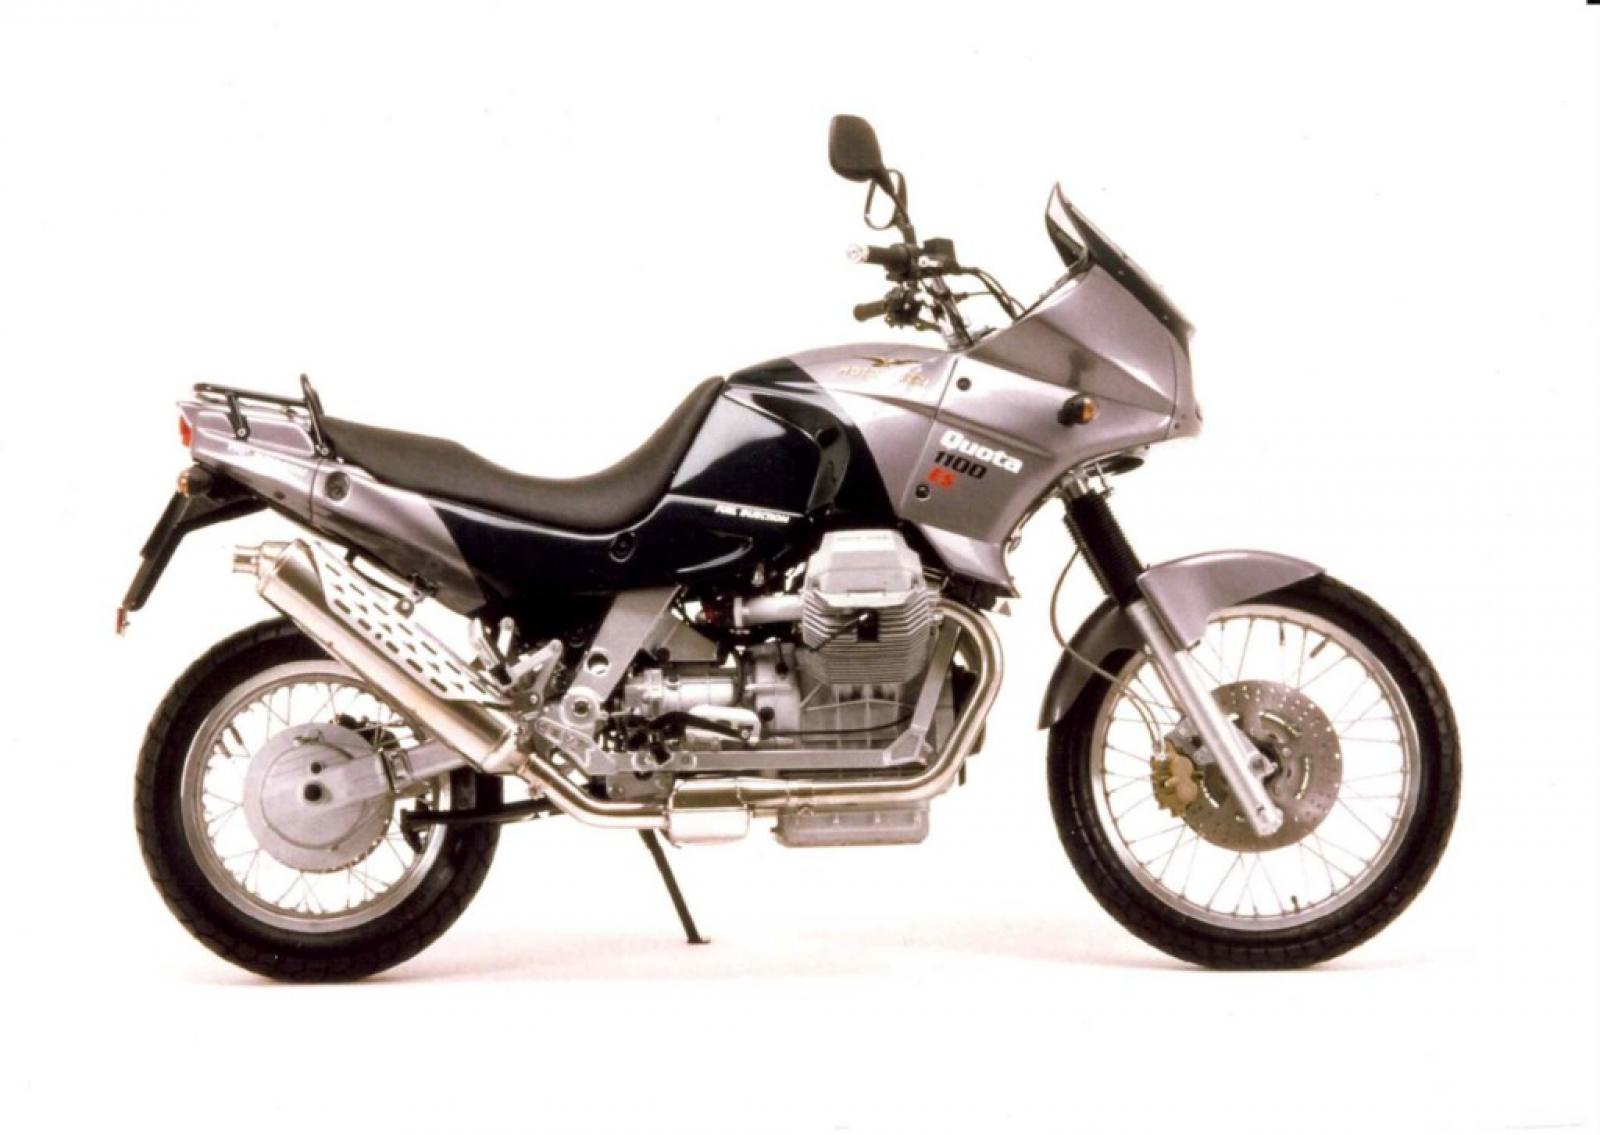 Moto Guzzi Quota 1000 1995 images #109281